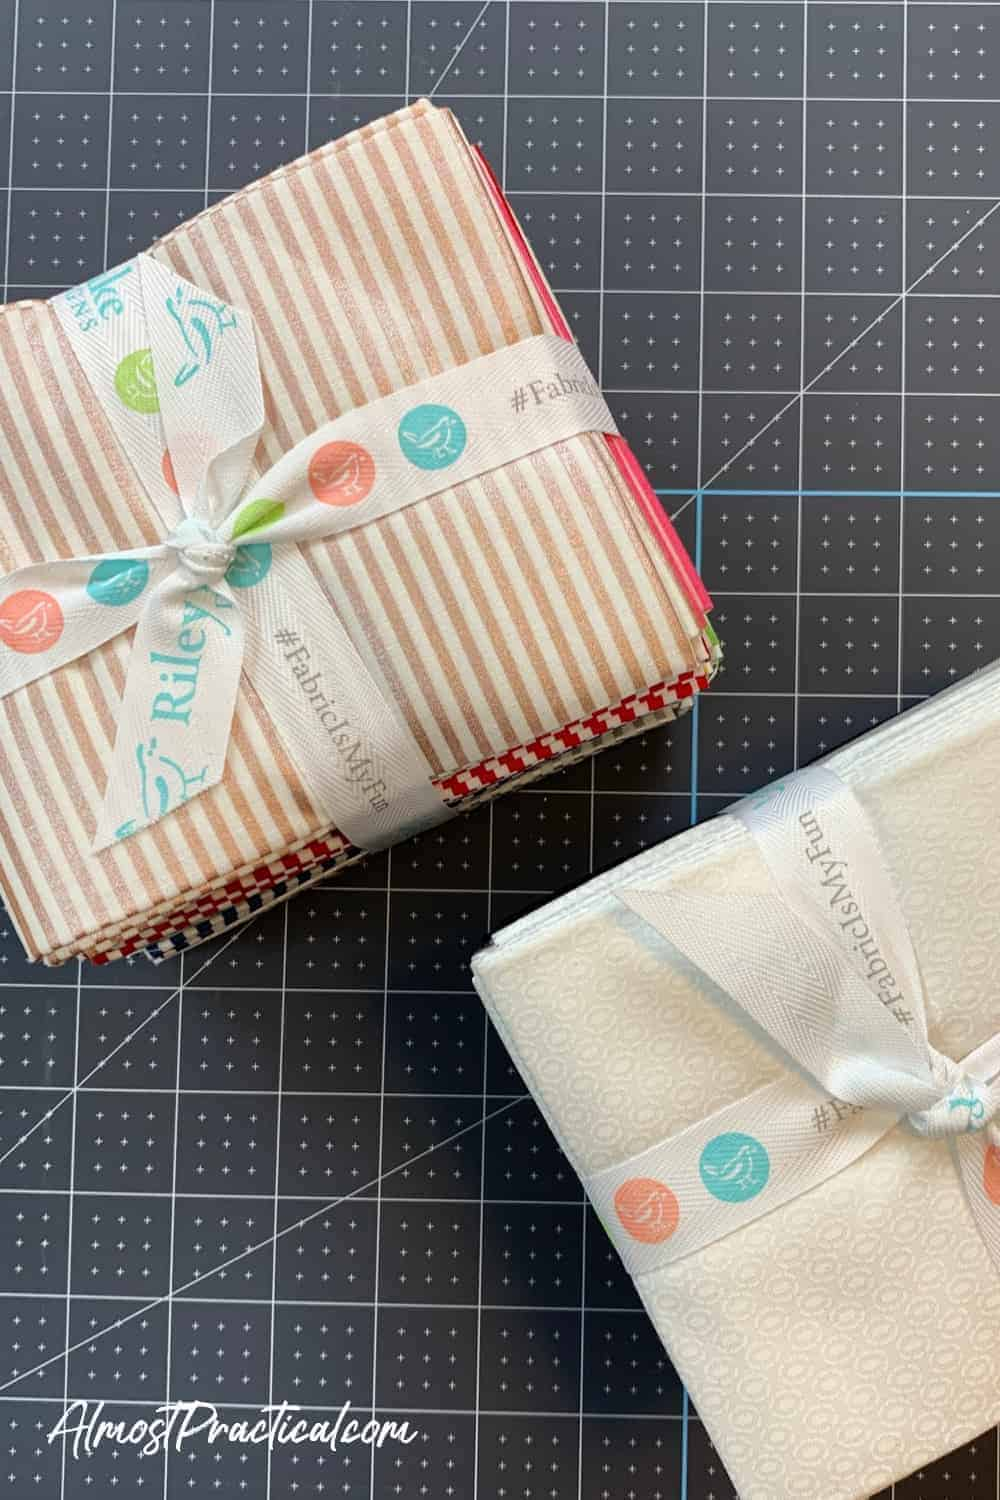 2 fat quarter stacks of fabric in strips and white tied with ribbon from Riley Blake and sold at Cricut